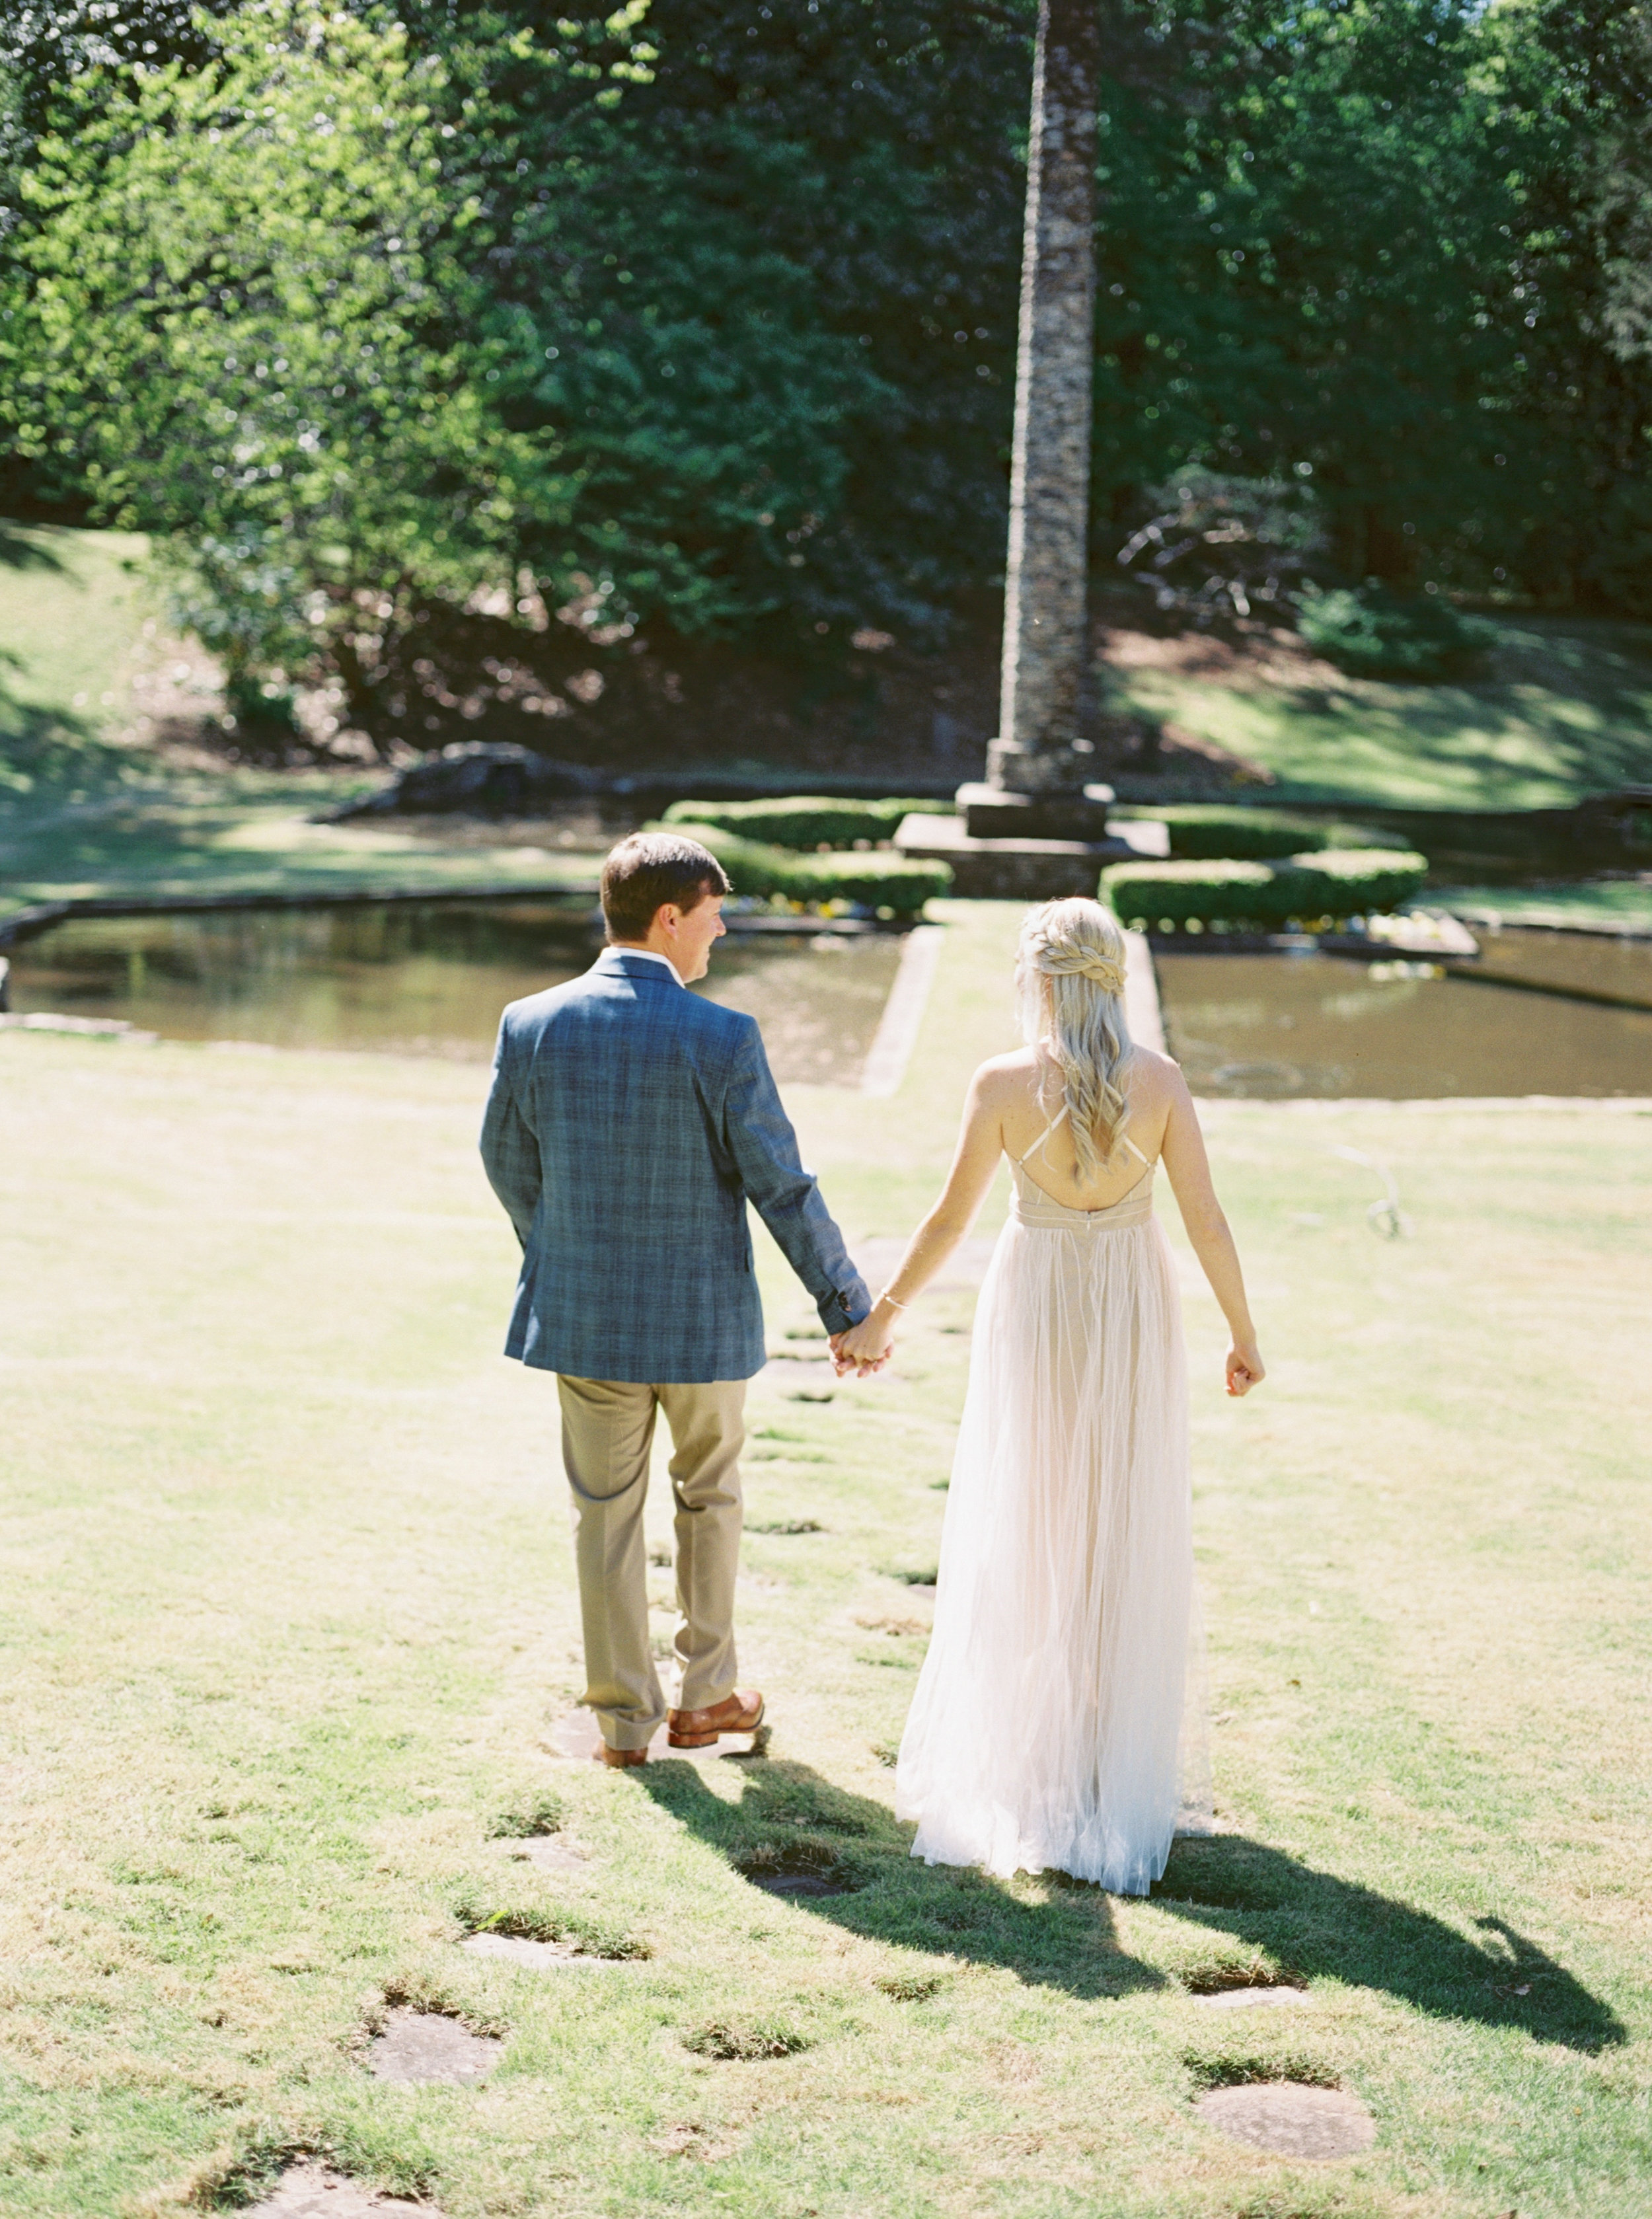 Erin_Johnny_Engagement_Dunaway_Gardens_Georgia_Film_Fallen_Photography-2.JPG